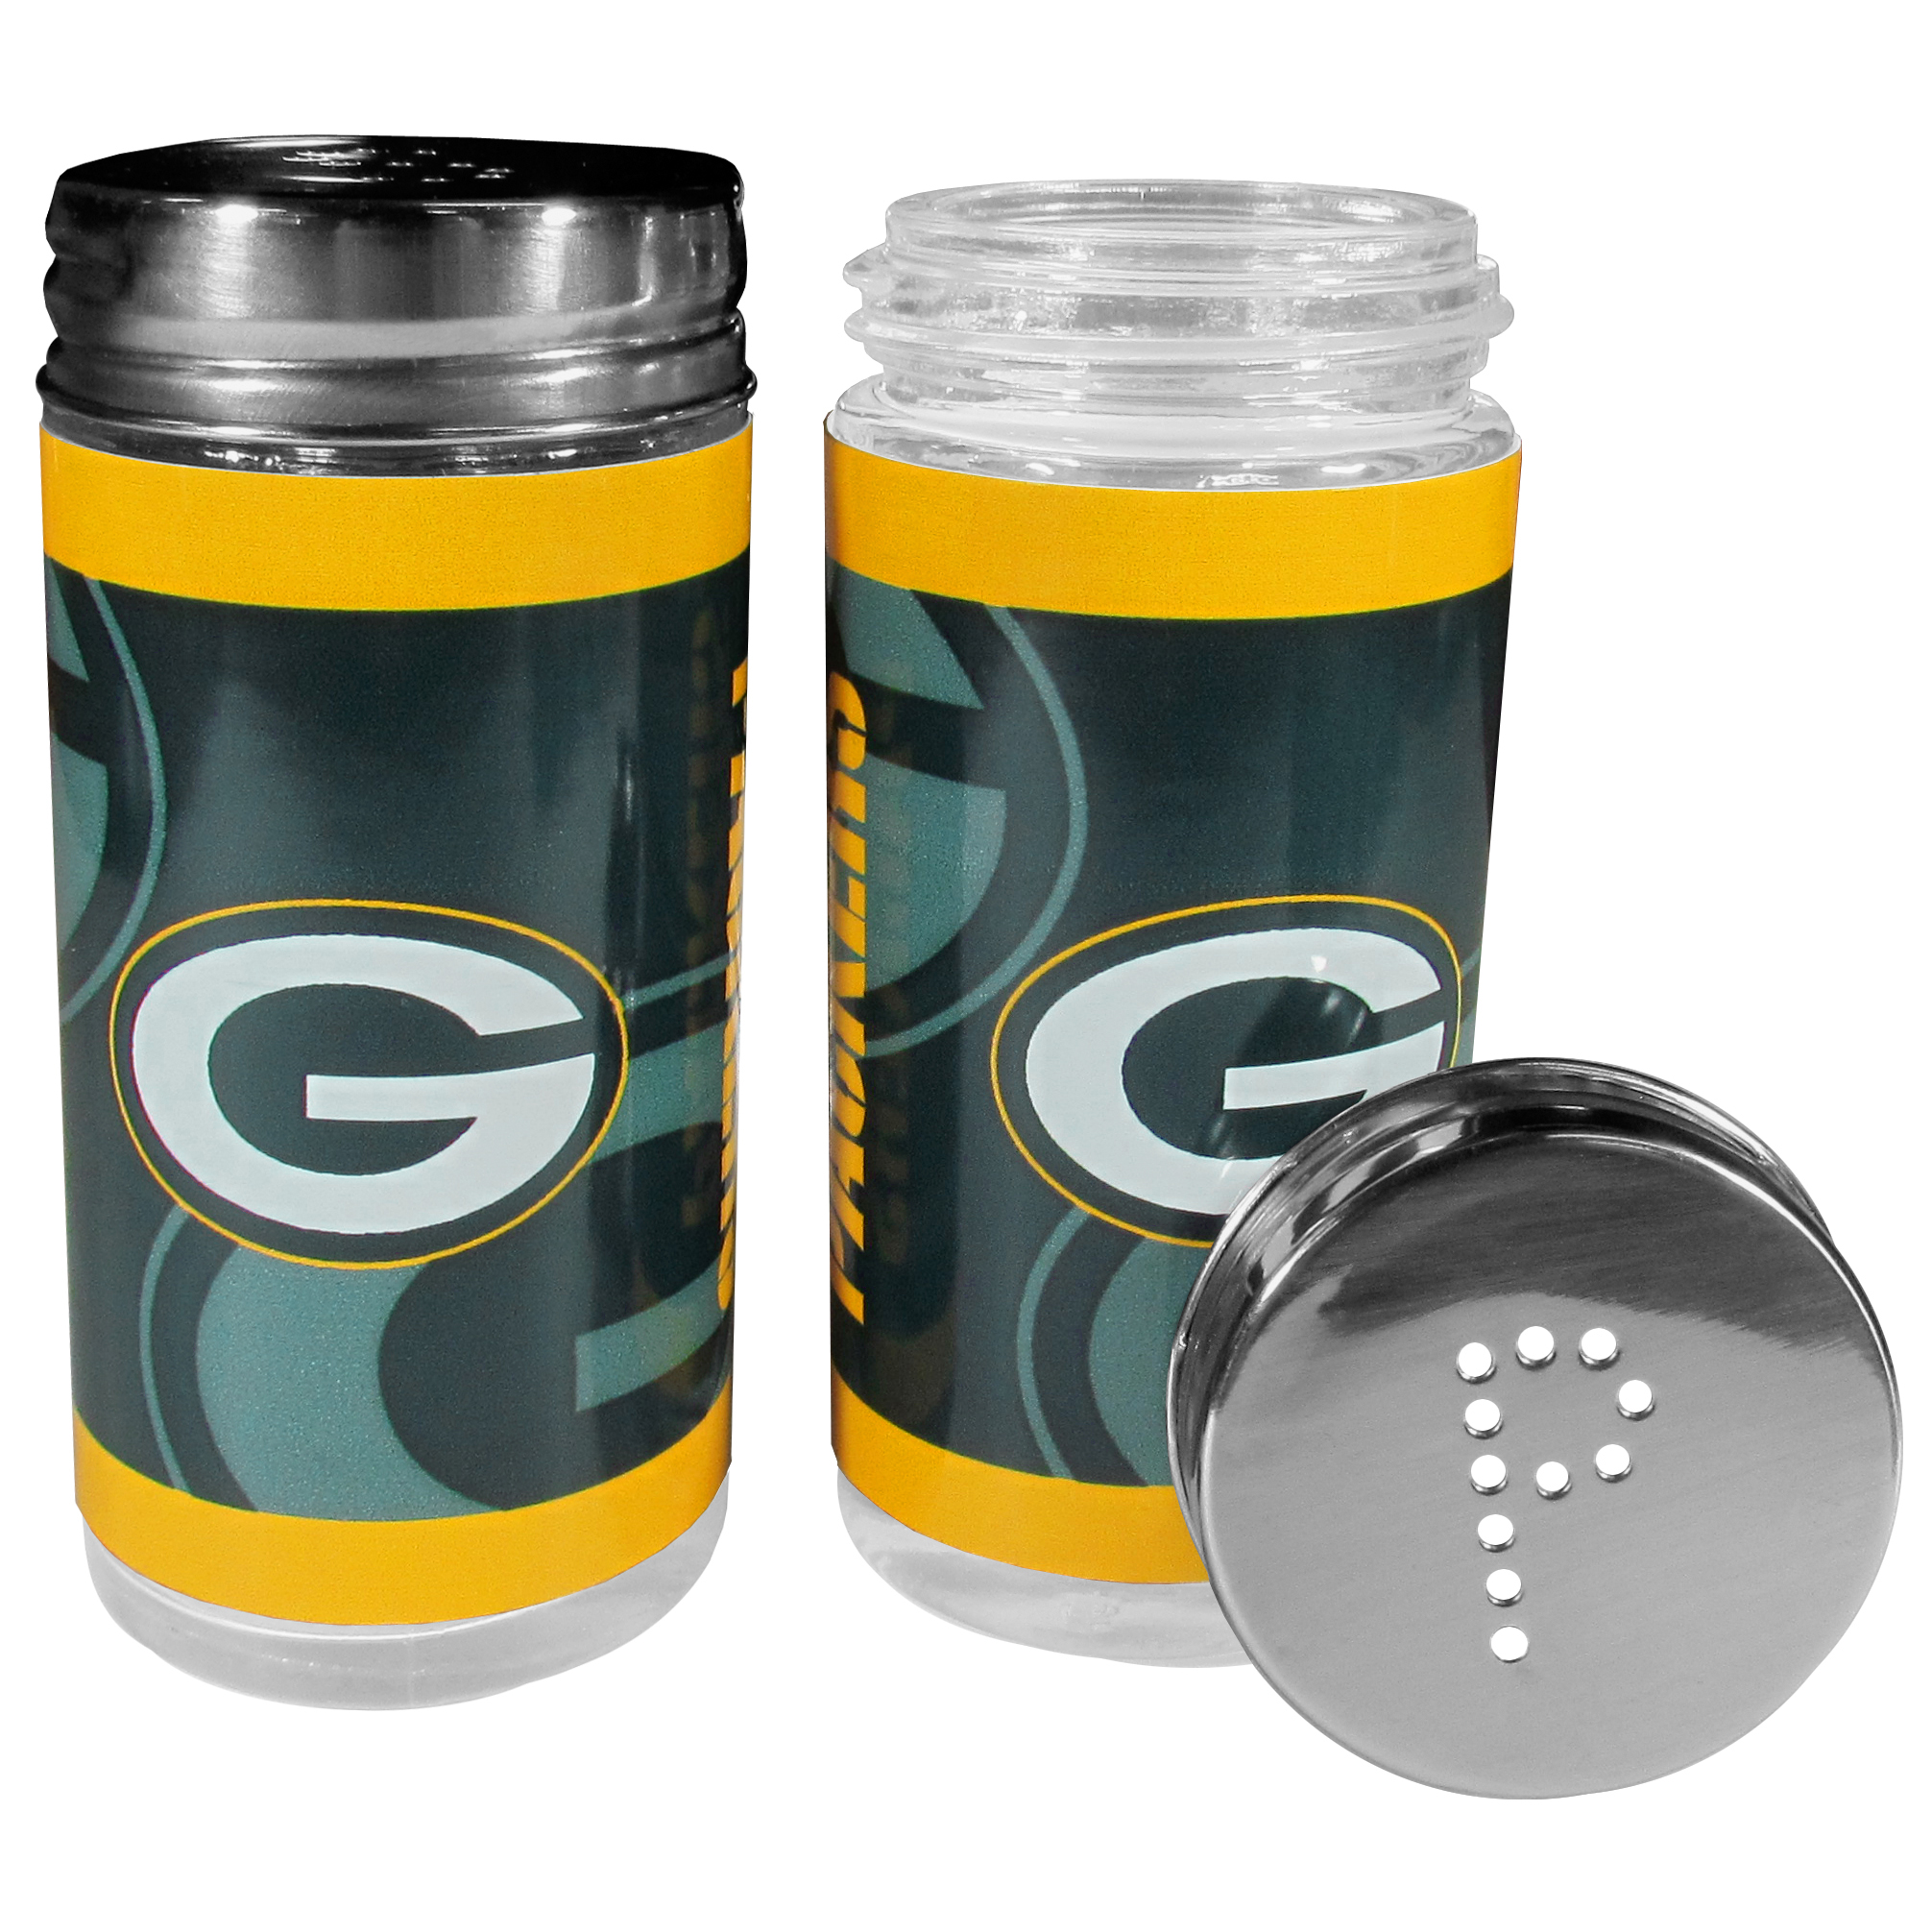 Green Bay Packers Tailgater Salt and Pepper Shakers - No tailgate party is complete without your Green Bay Packers salt & pepper shakers featuring bright team graphics. The glass shakers are 3.75 inches tall and the screw top lids have holes that spell out P and S. These team shakers are a great grill accessory whether you are barbecuing on the patio, picnicing or having a game day party.